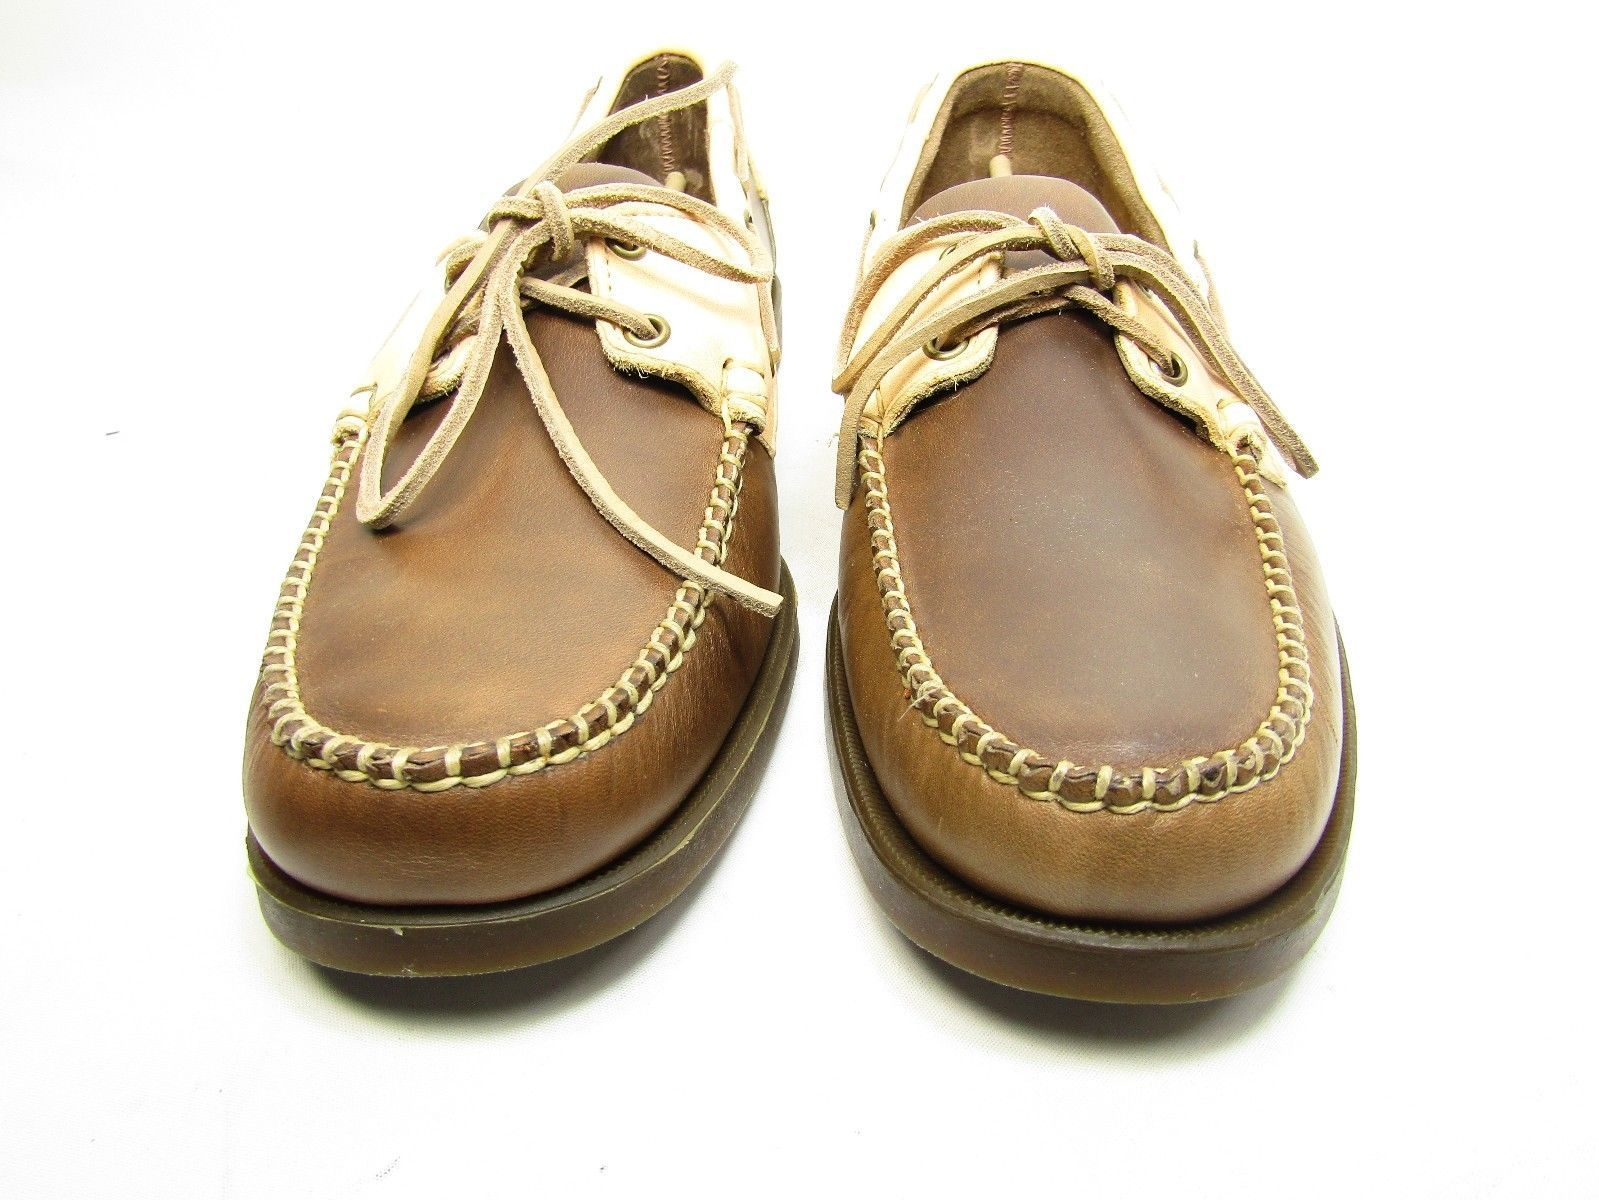 Sebago Horween Spinnaker Boat Shoes B720034 For Men Brown/bone Size 12M